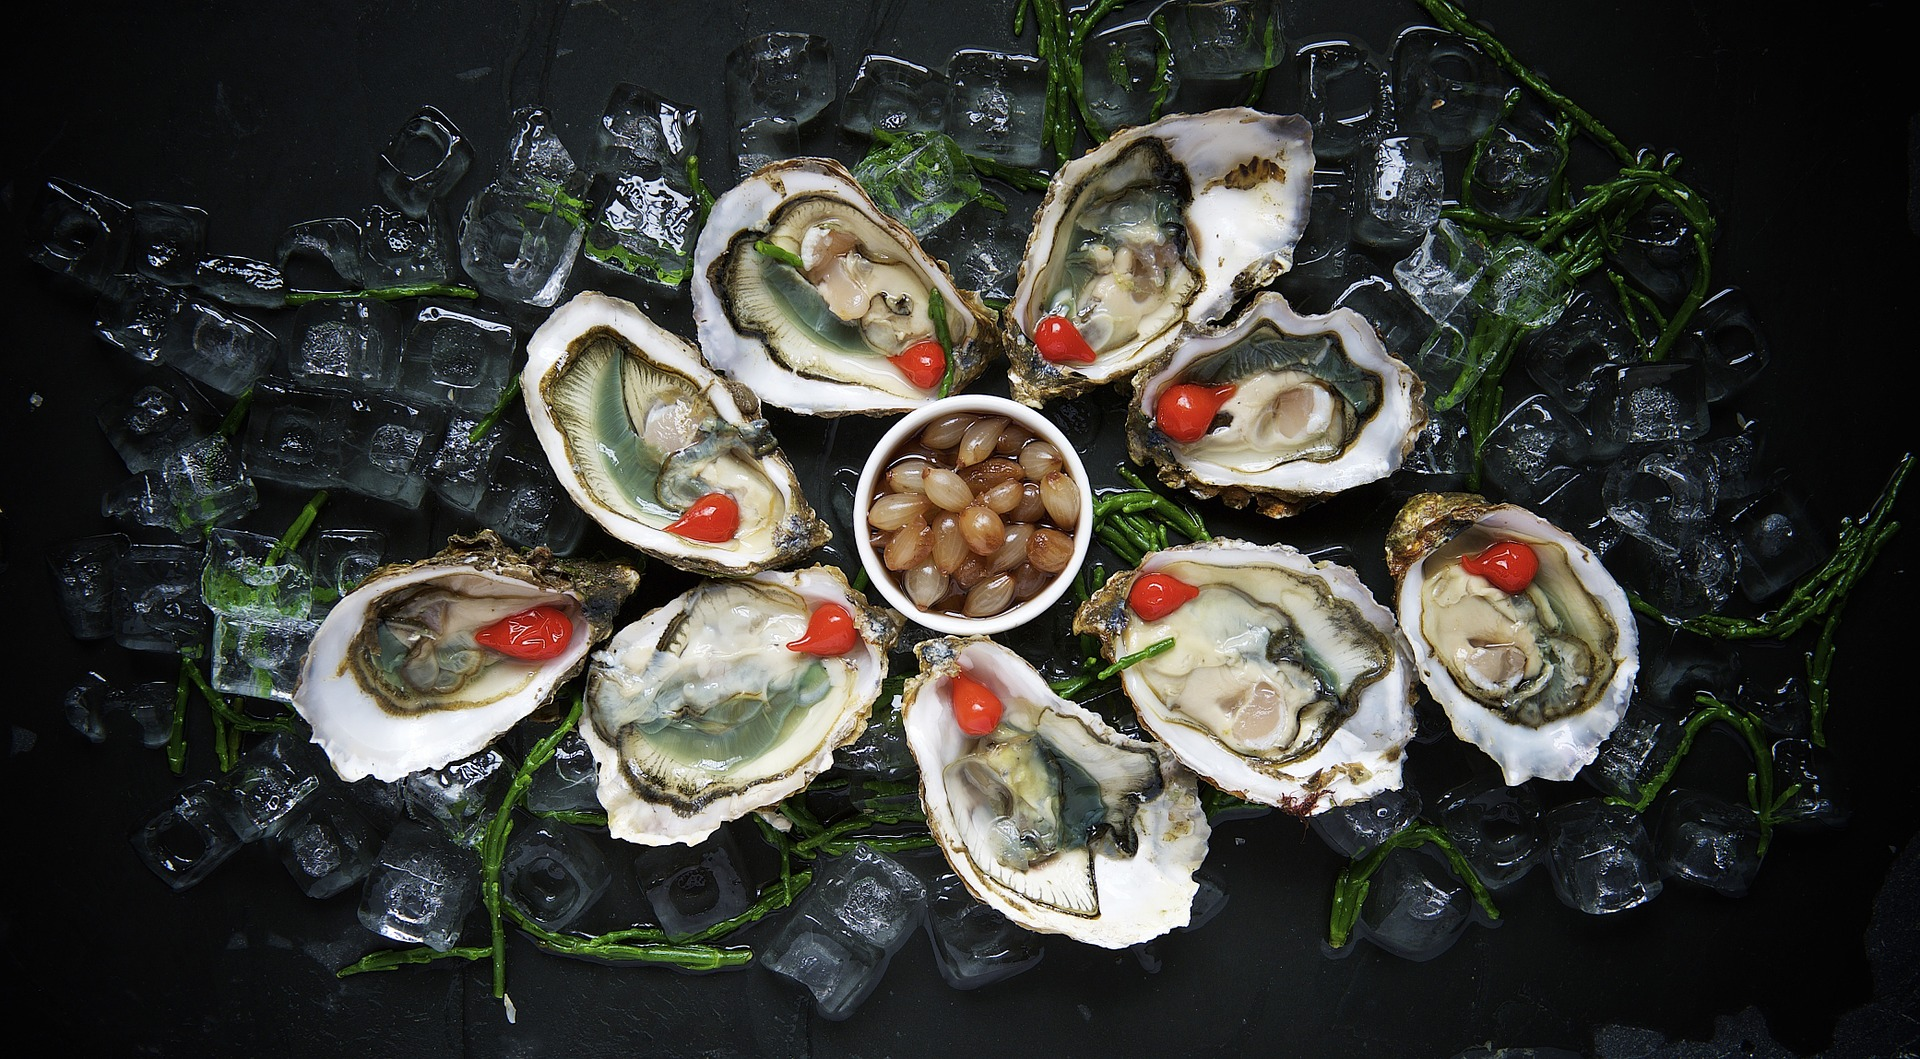 oysters-1209767_1920.jpg